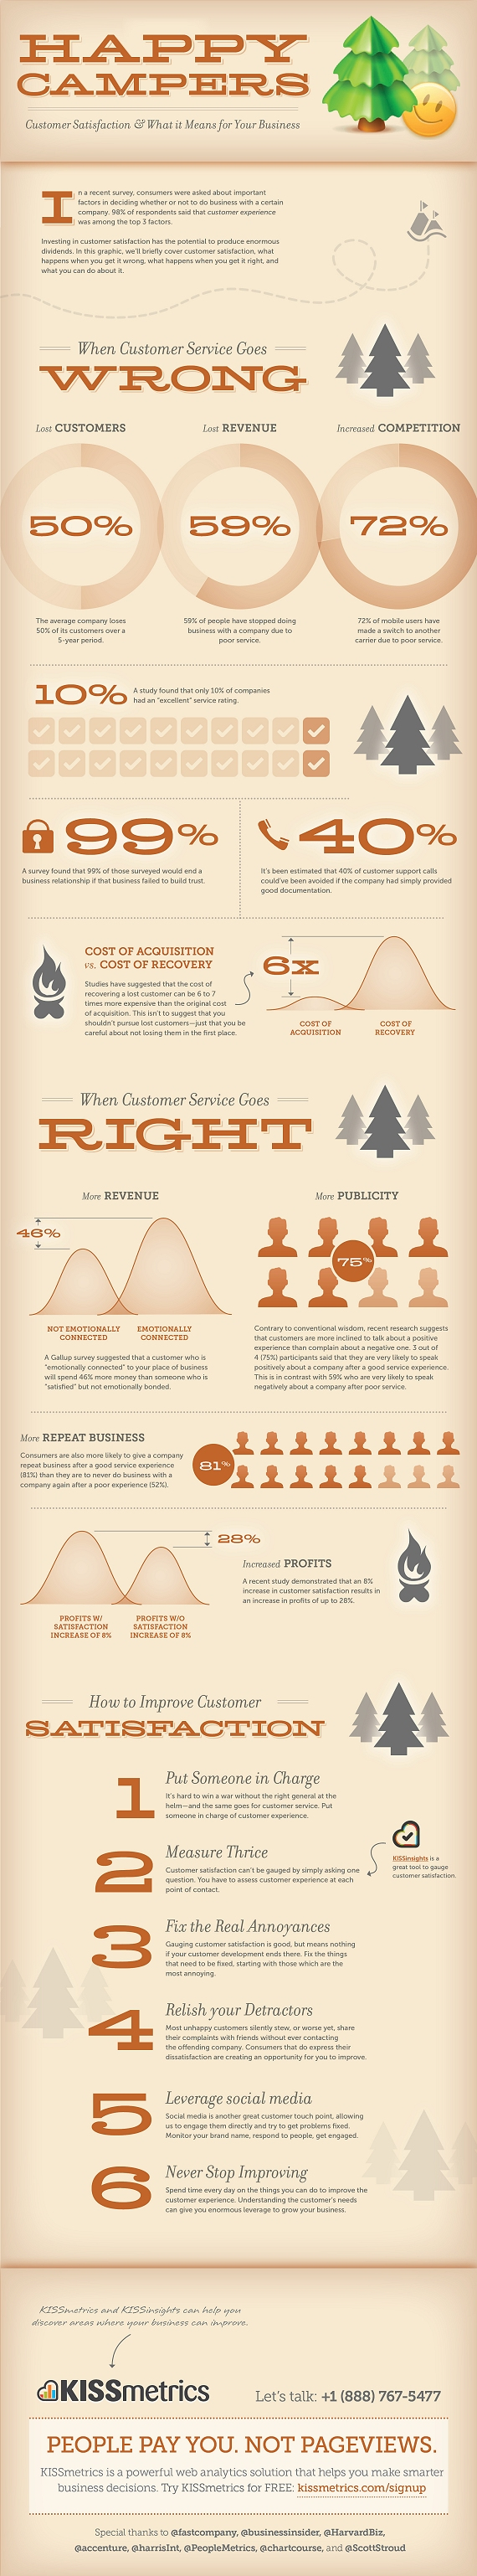 Happy Campers - Customer Satisfaction & What it Means for Your Business